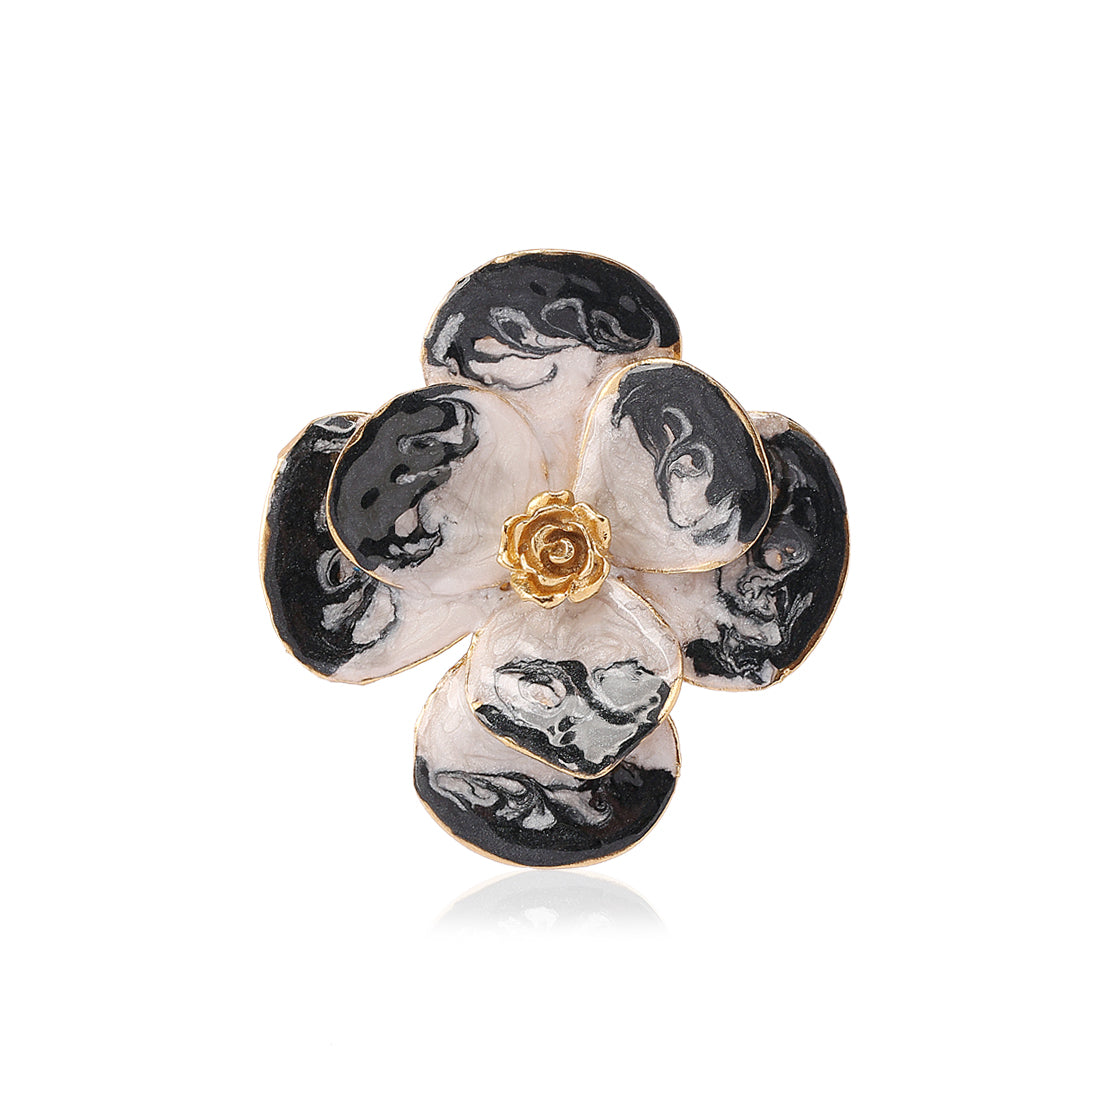 Duo Enamel Brooch